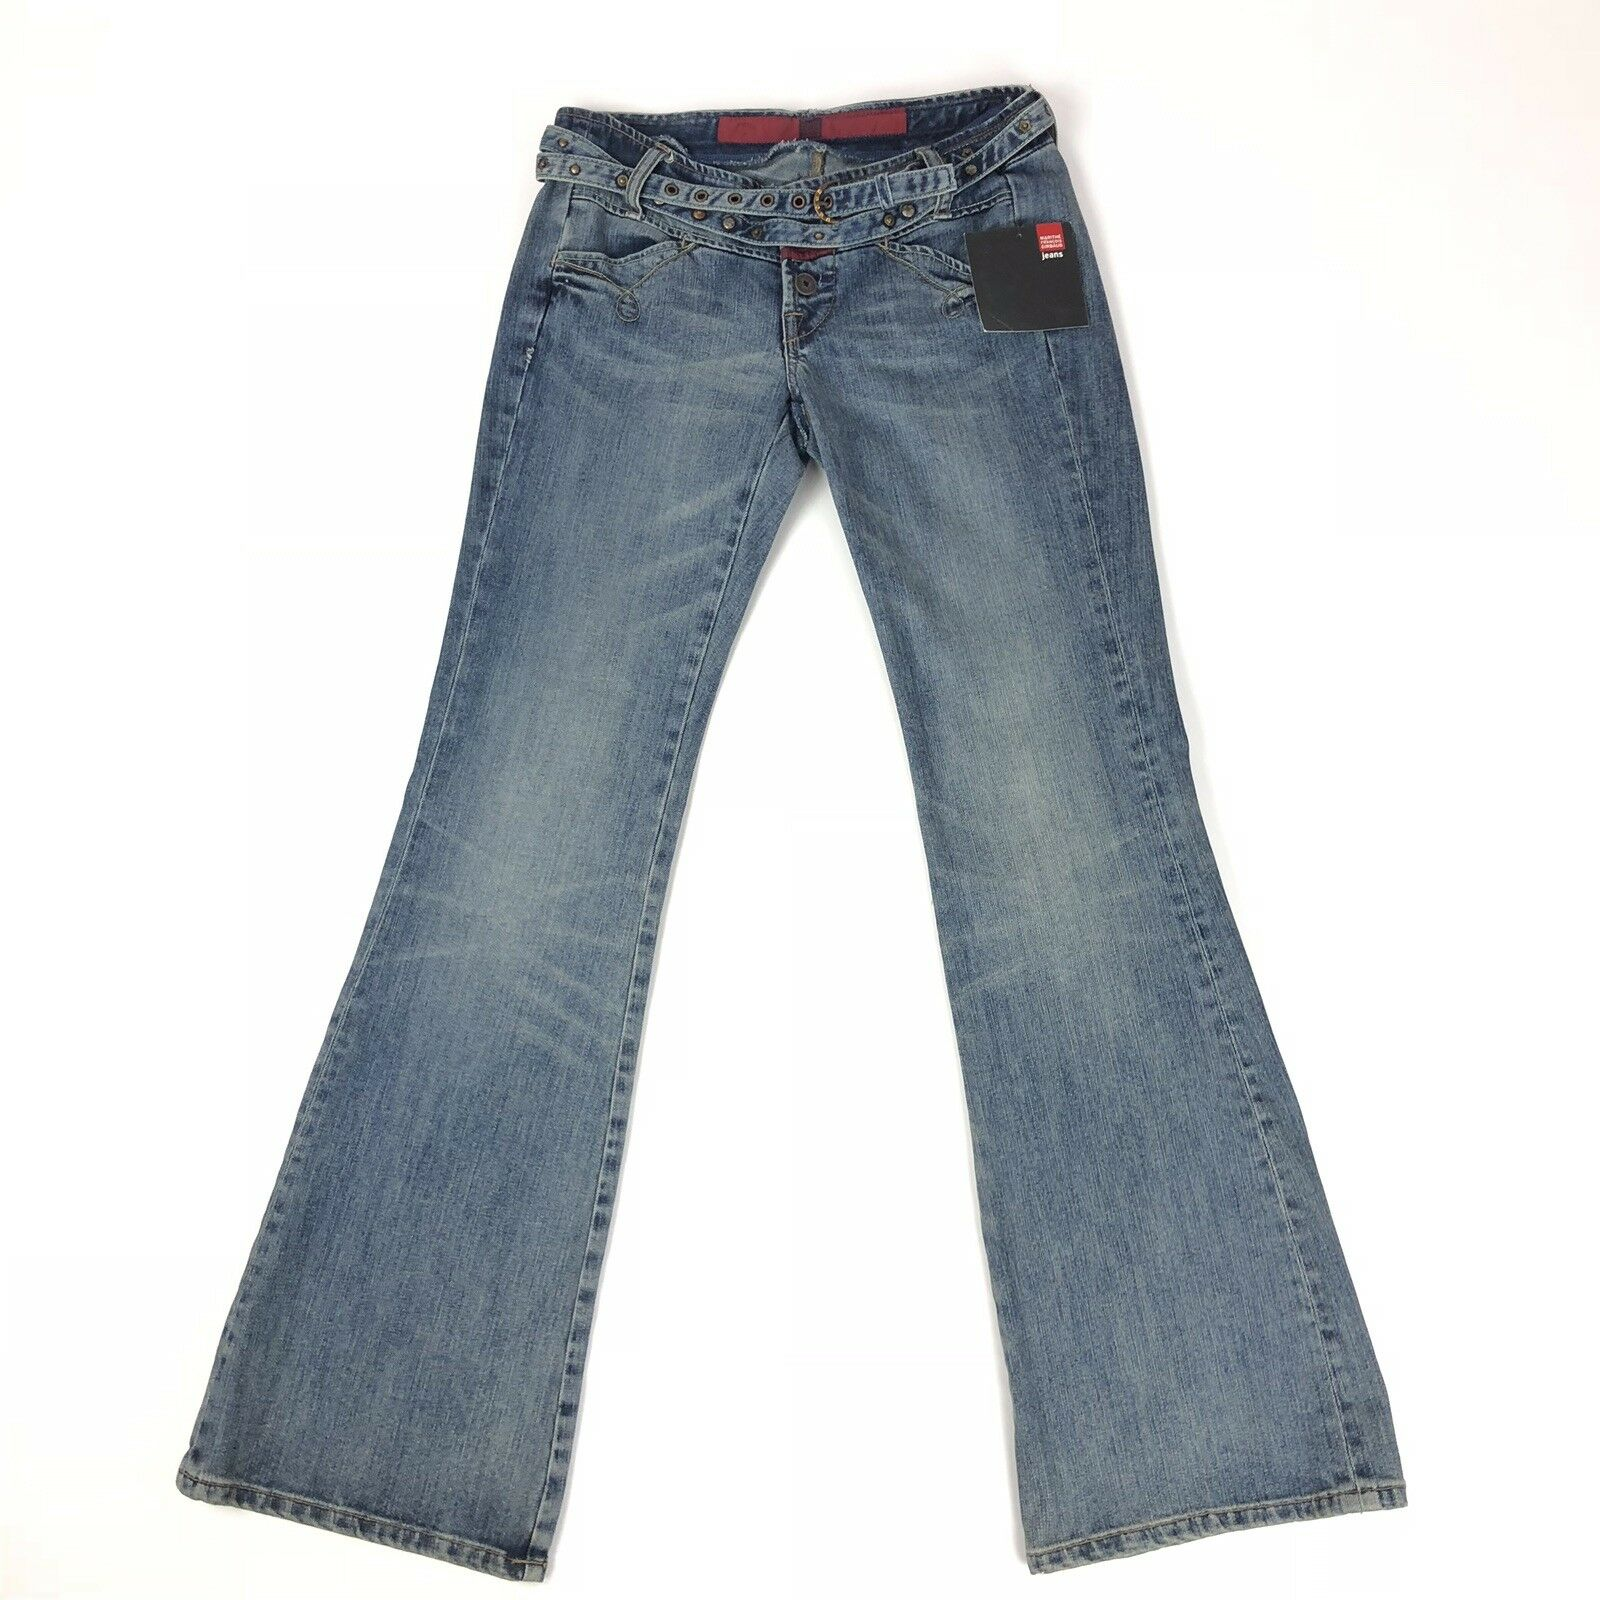 Marithe Francois Girbaud VTG Womens 27 Rodeo Gal Jeans Button Fly Belt Bootcut